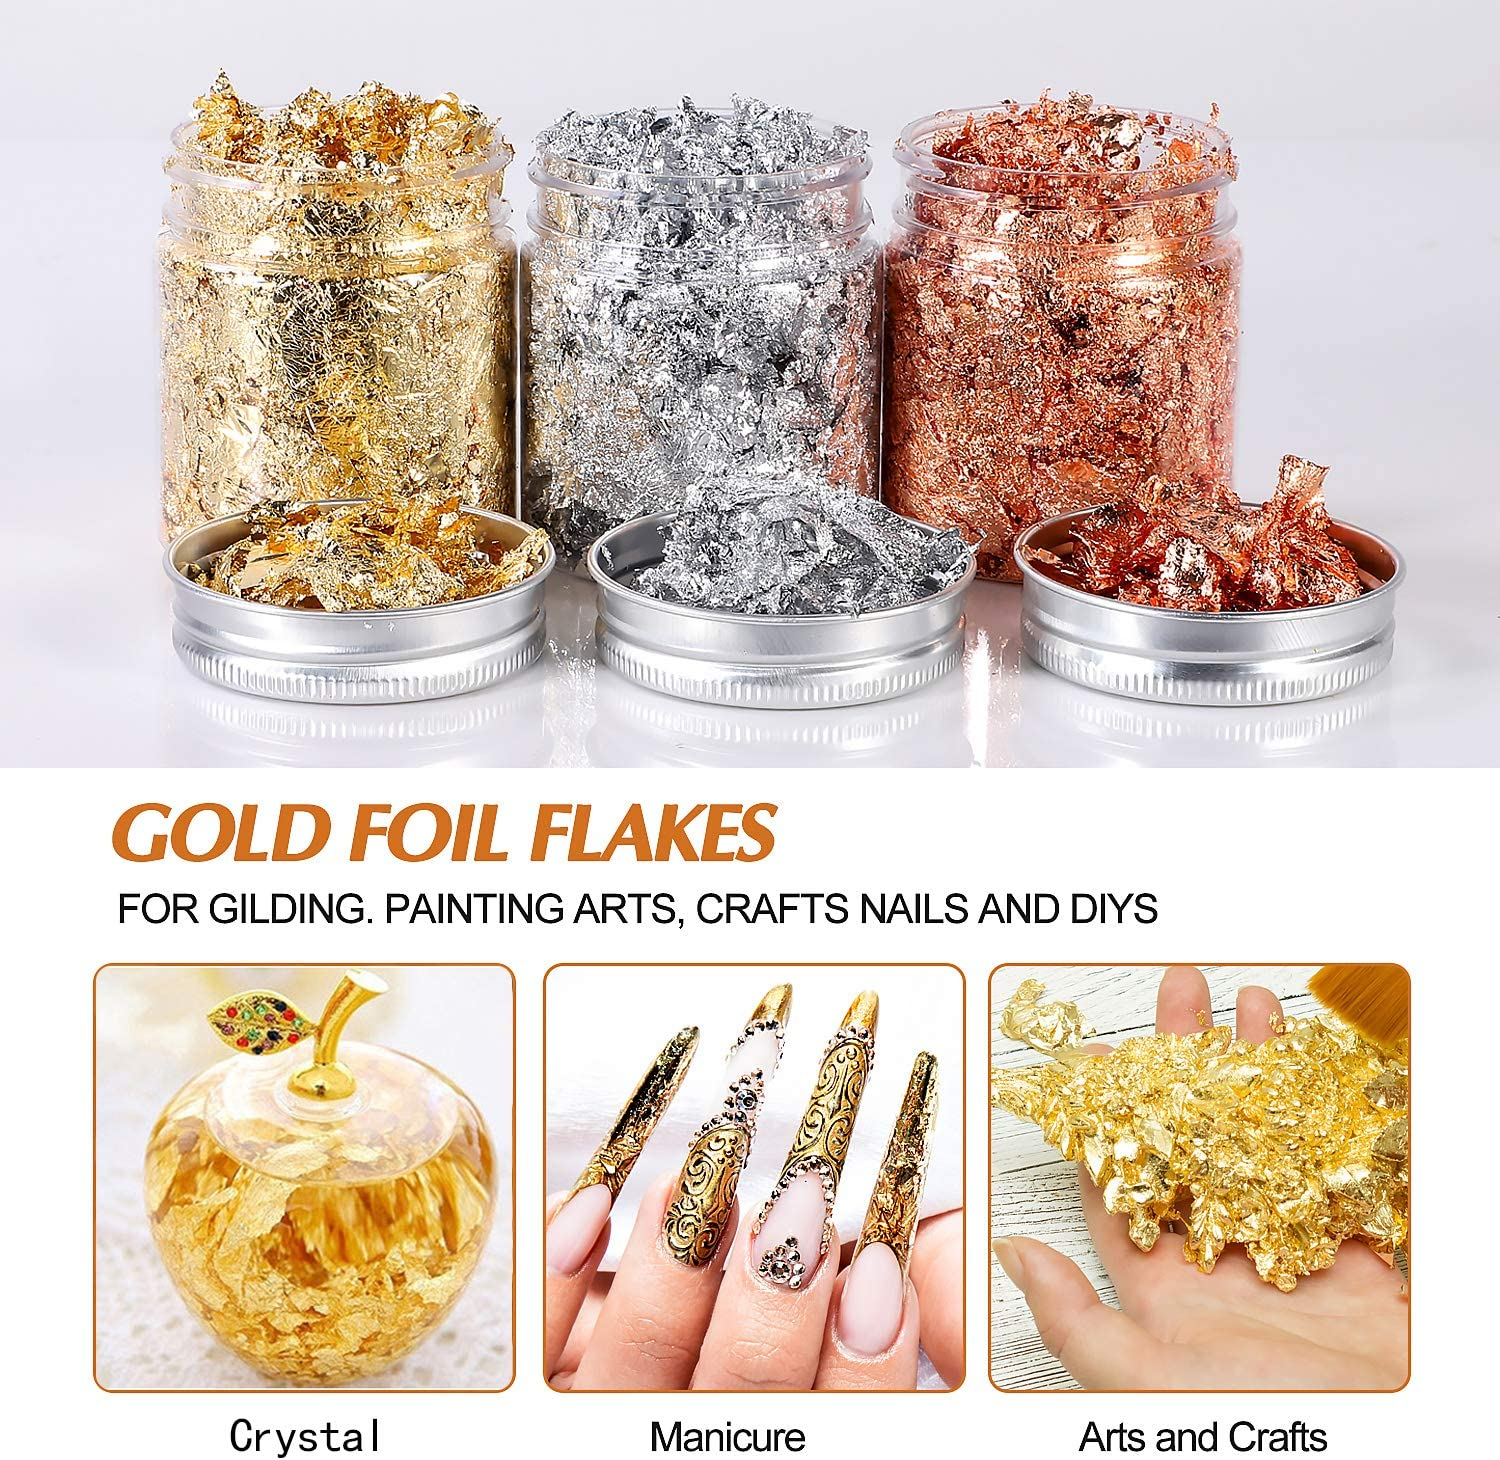 Gold Foil Flakes For Resin 3 Bottles Metallic Foil Flakes 15 Gram Yuliktor Imitation Gold Foil Flakes Metallic Leaf For Nails Painting Crafts Slime And Resin Jewelry Making Gold Silver Copper Colors Arts Crafts Sewing Amazon Com